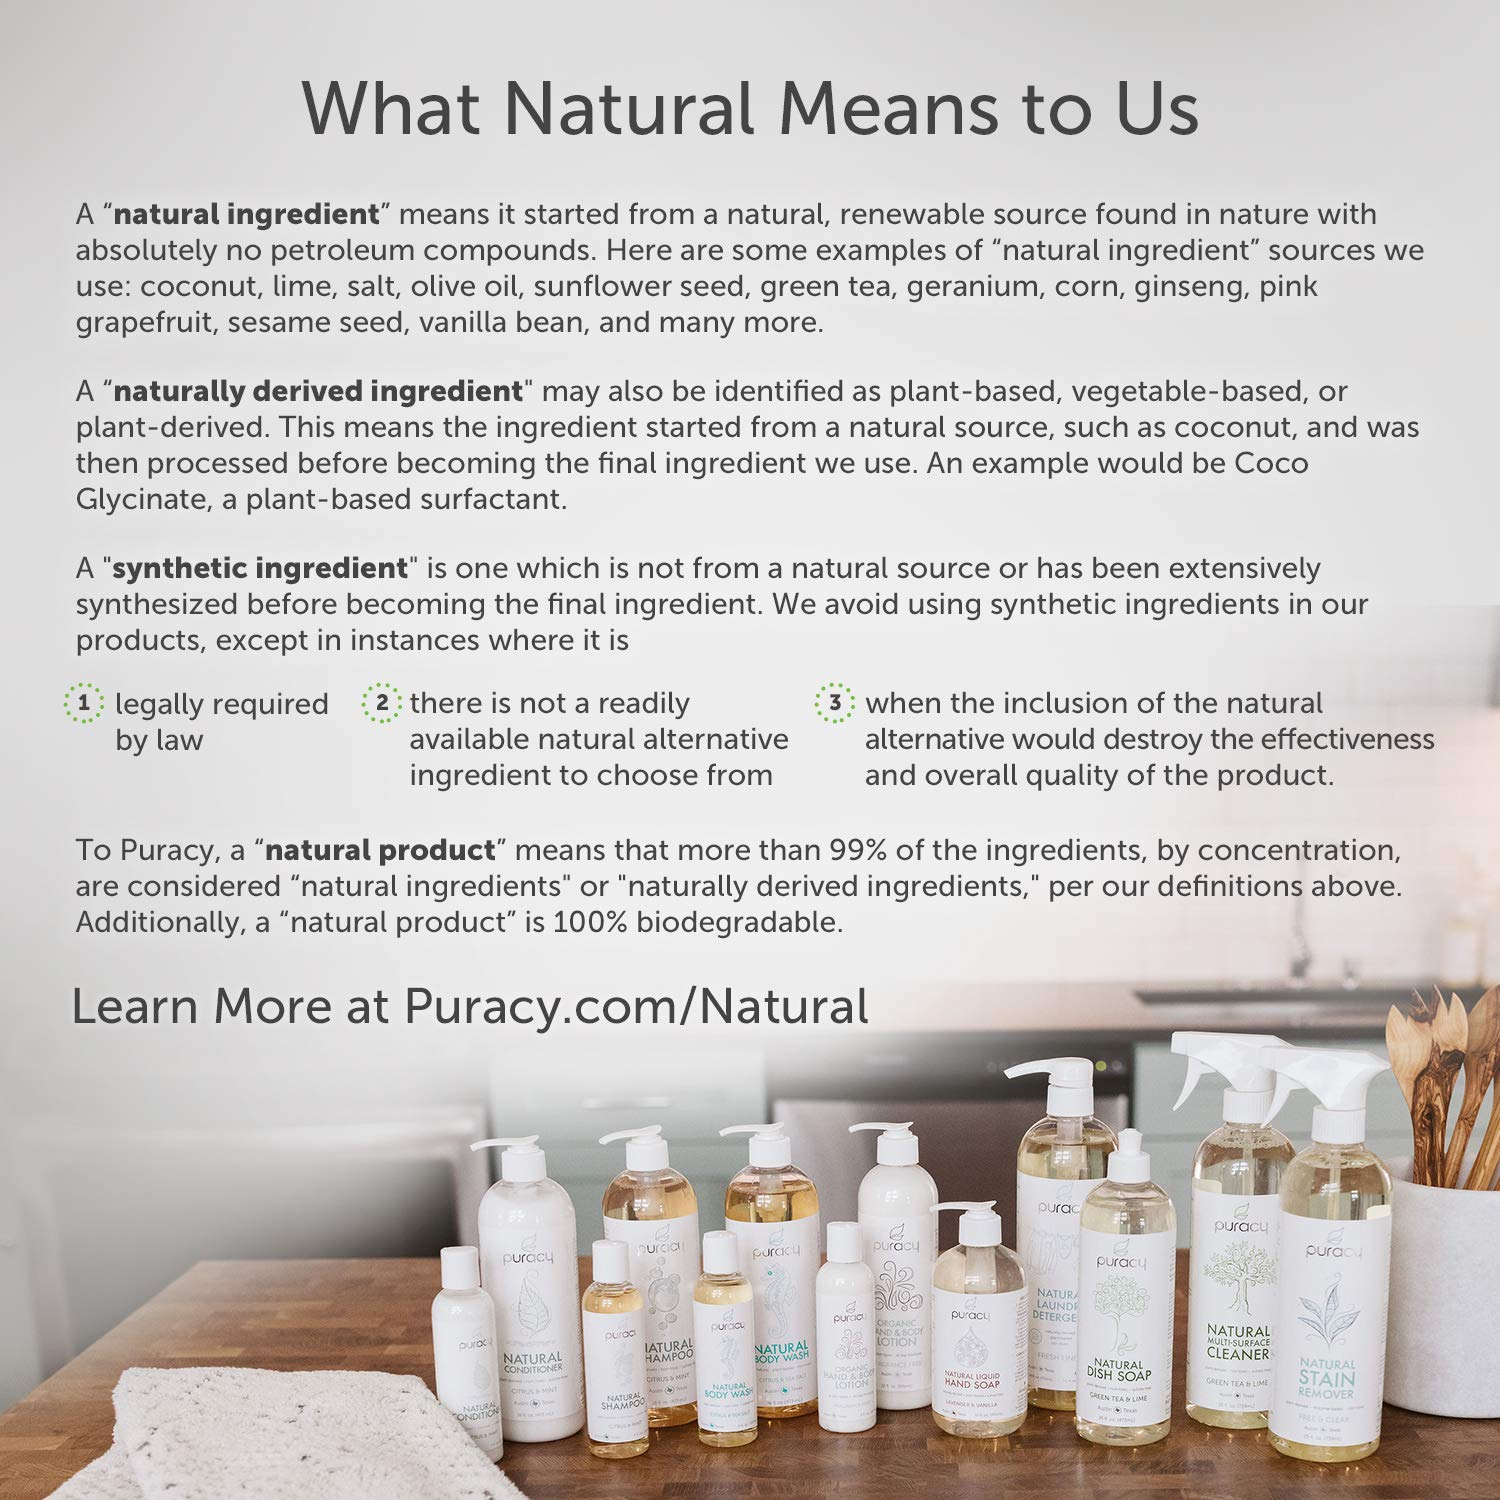 Puracy Organic Baby Care Gift Set, Travel Size Natural Lotion, Shampoo, Bubble Bath, Stain Remover